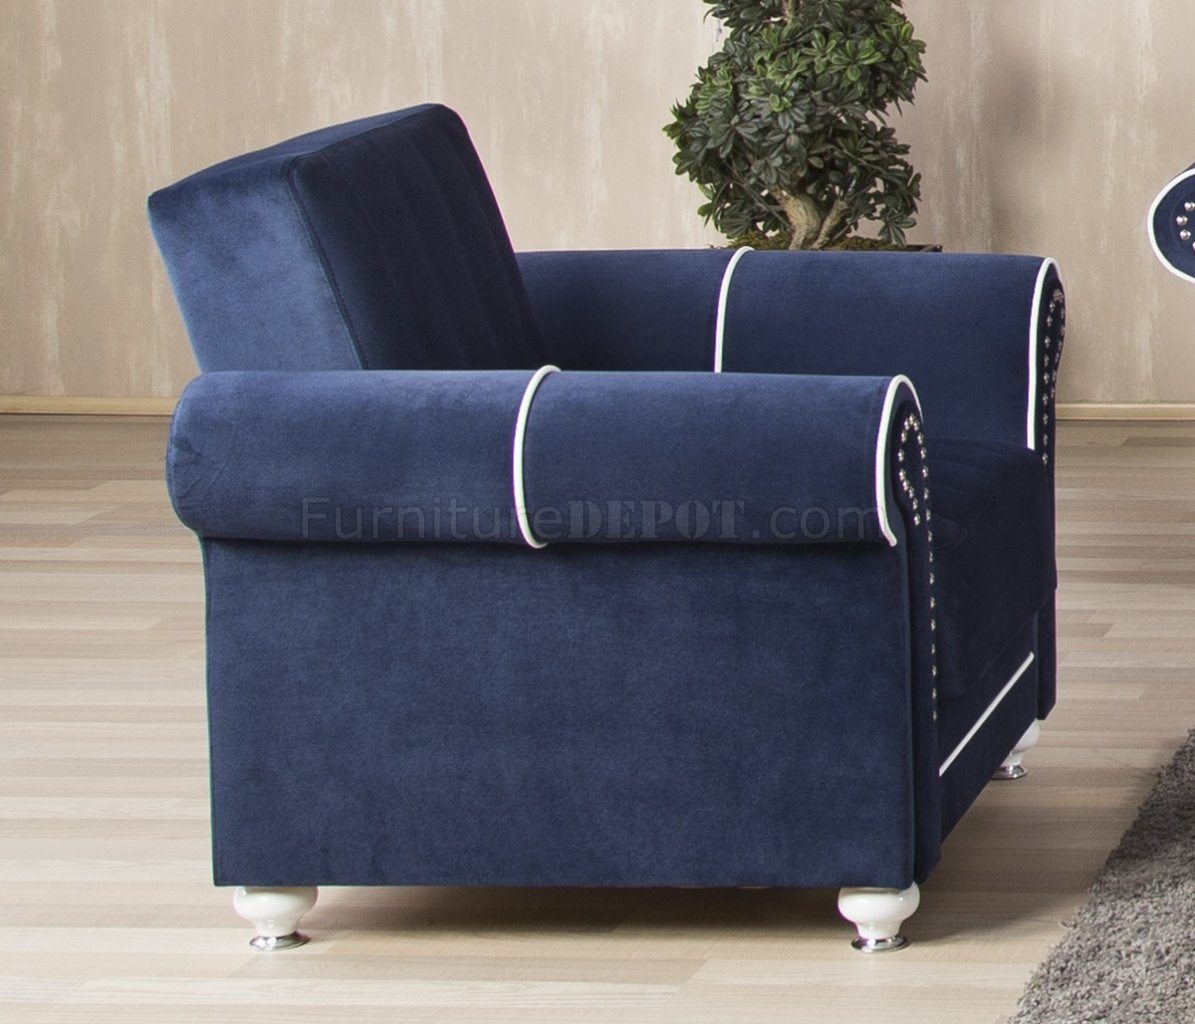 Royal Home Sectional Sofa In Dark Blue Fabric By Casamode